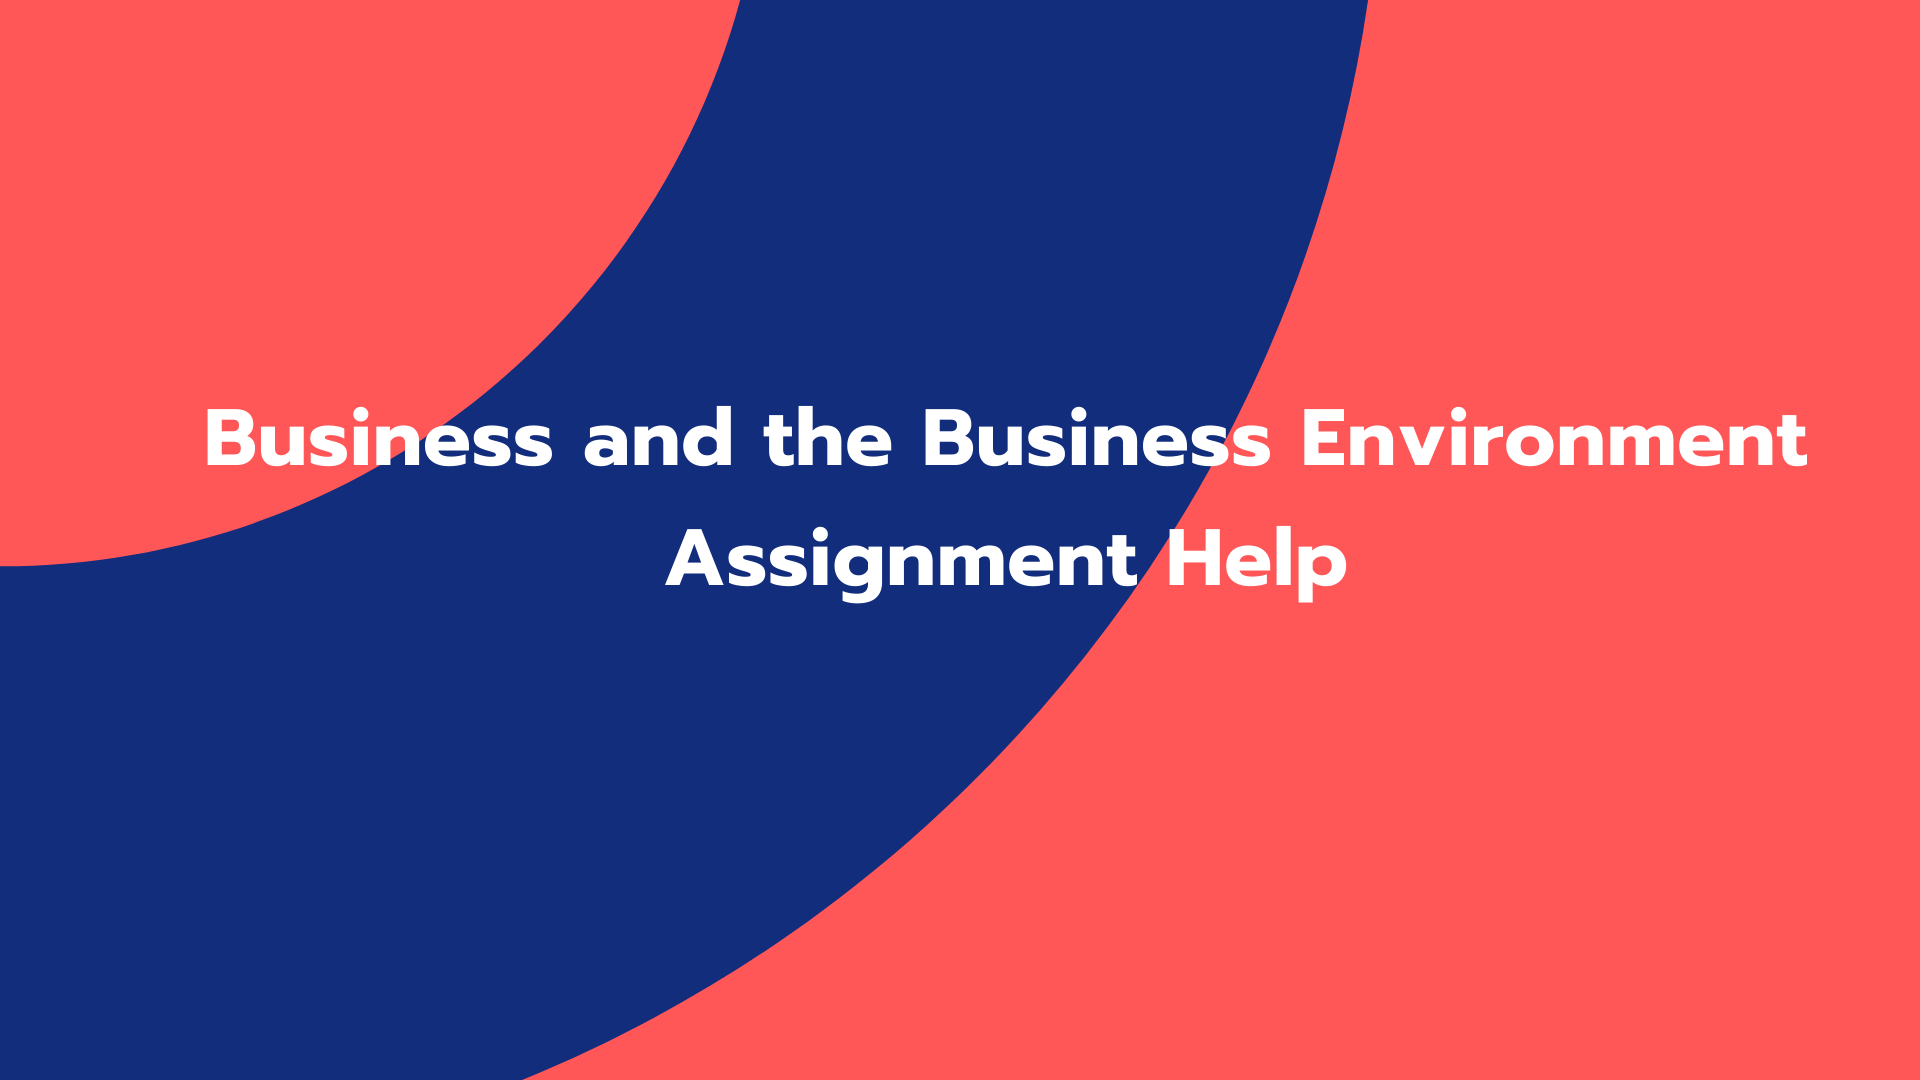 Business and the Business Environment Assignment Help